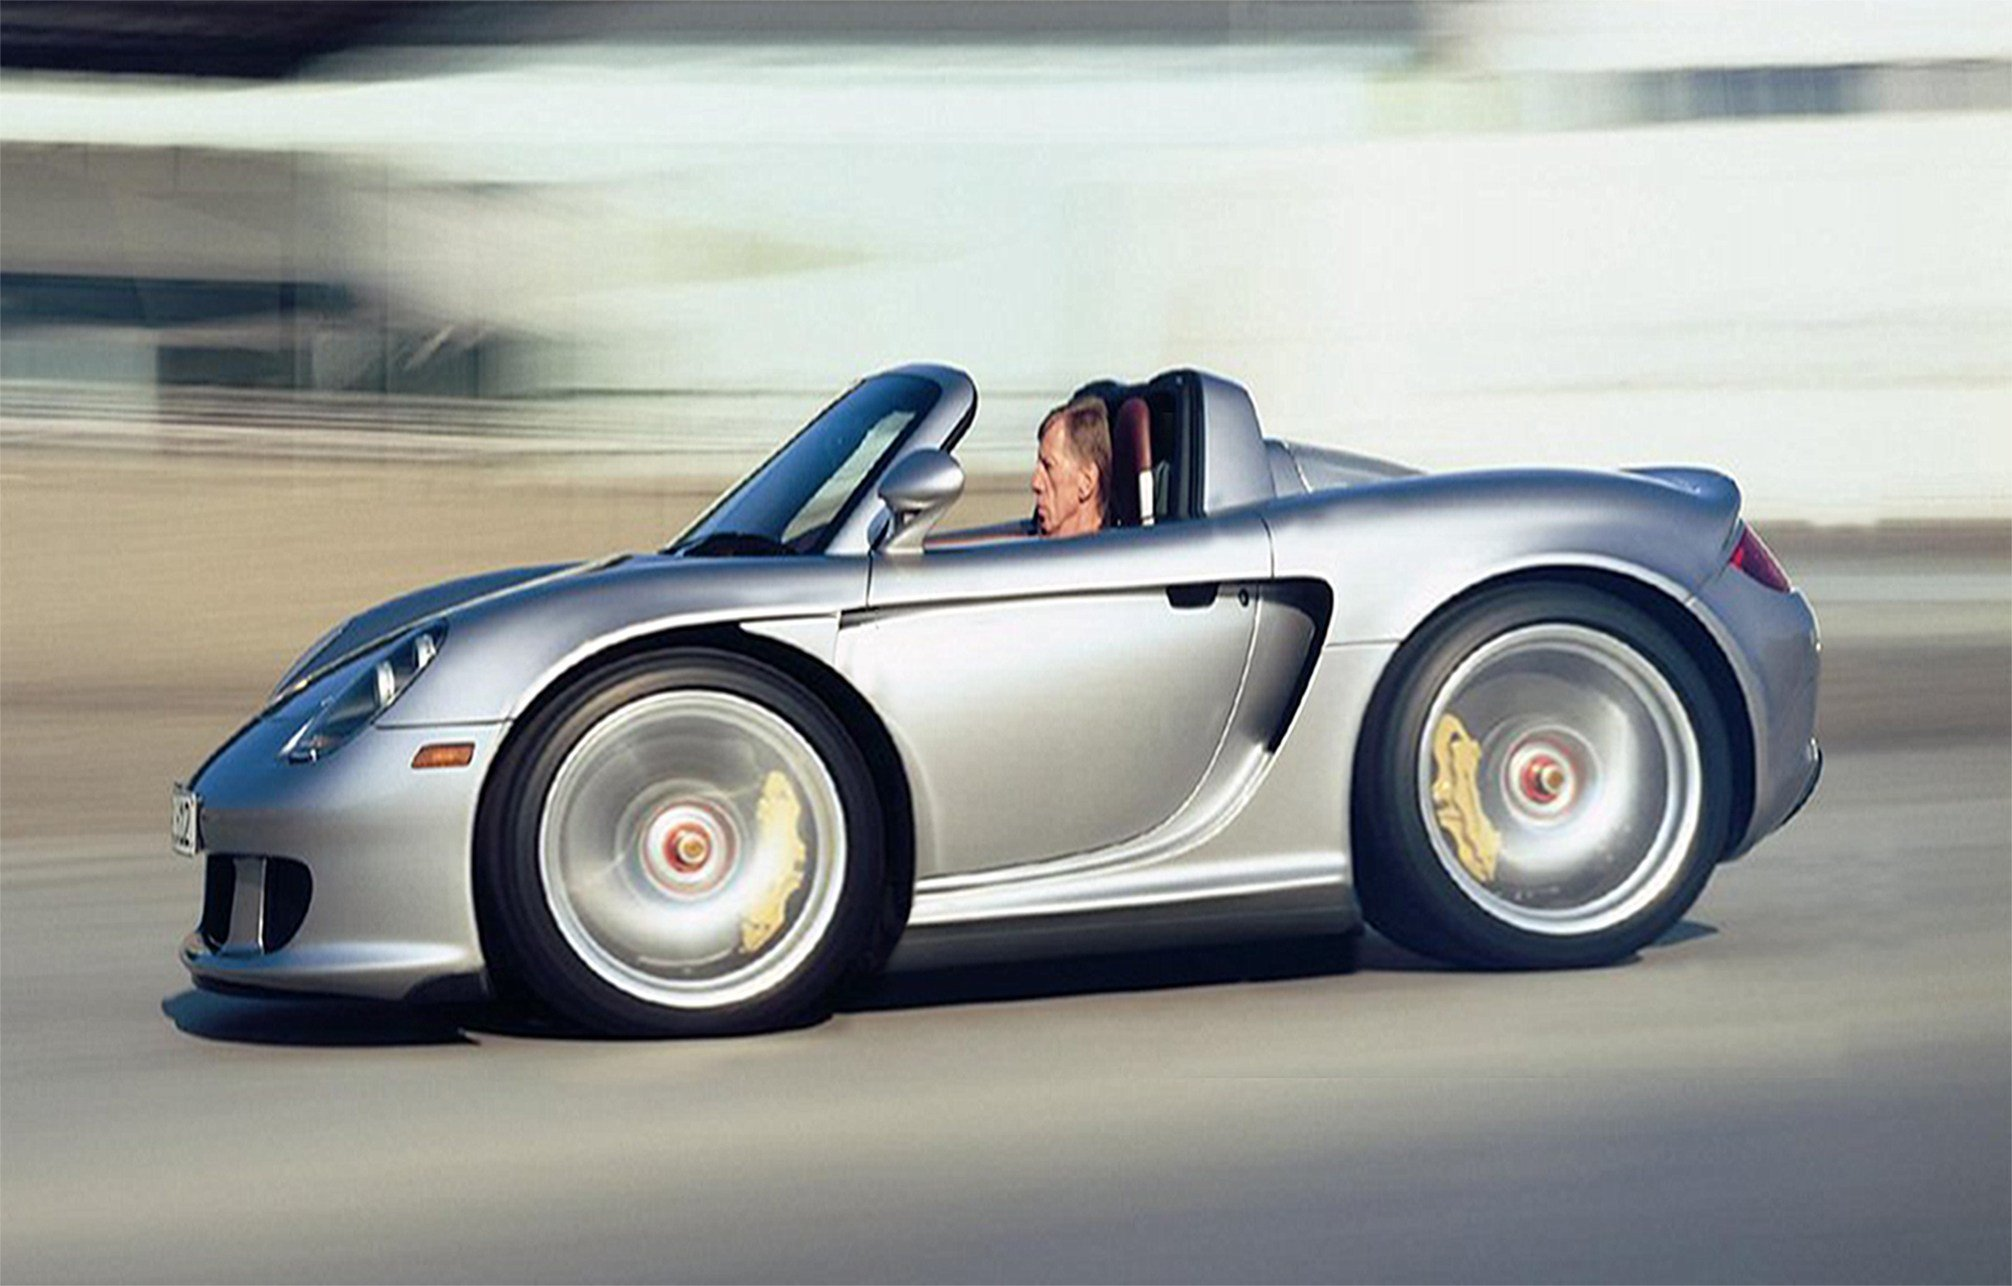 New Picture Album Called Mini Cars 911 Uploaded By On This Month